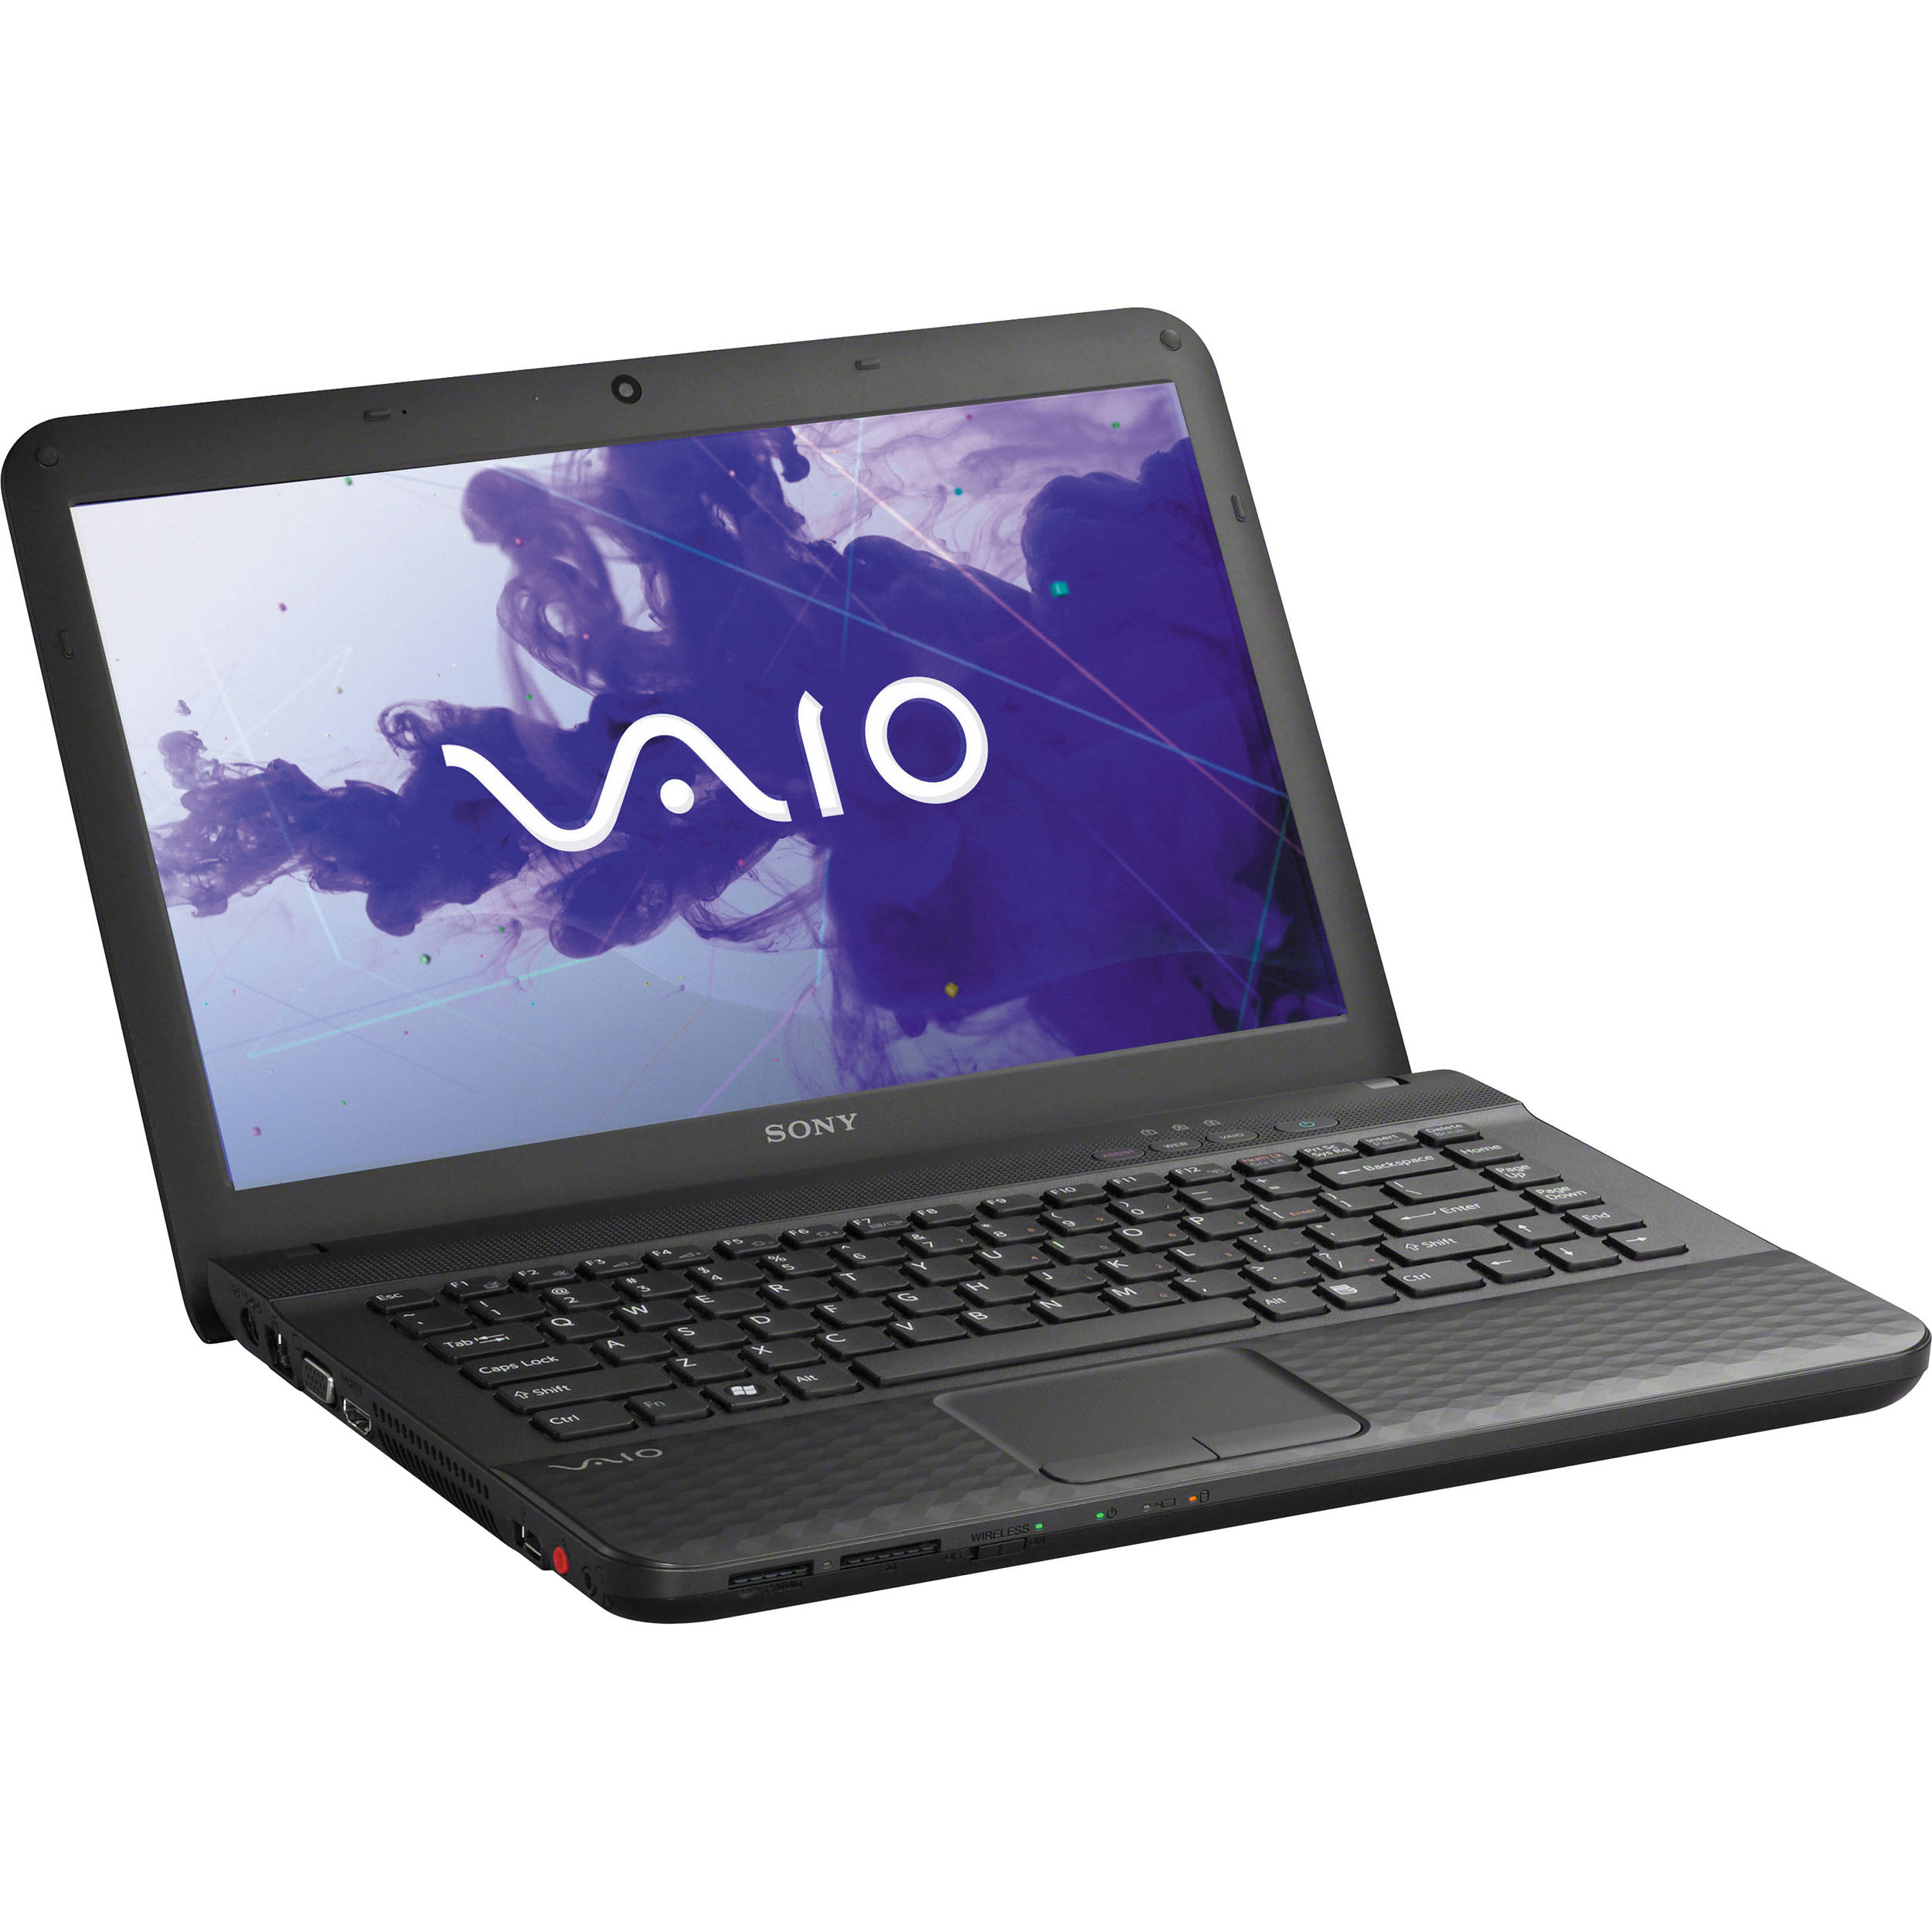 Sony Vaio VPCEG23FX Intel Wireless Display Treiber Windows XP